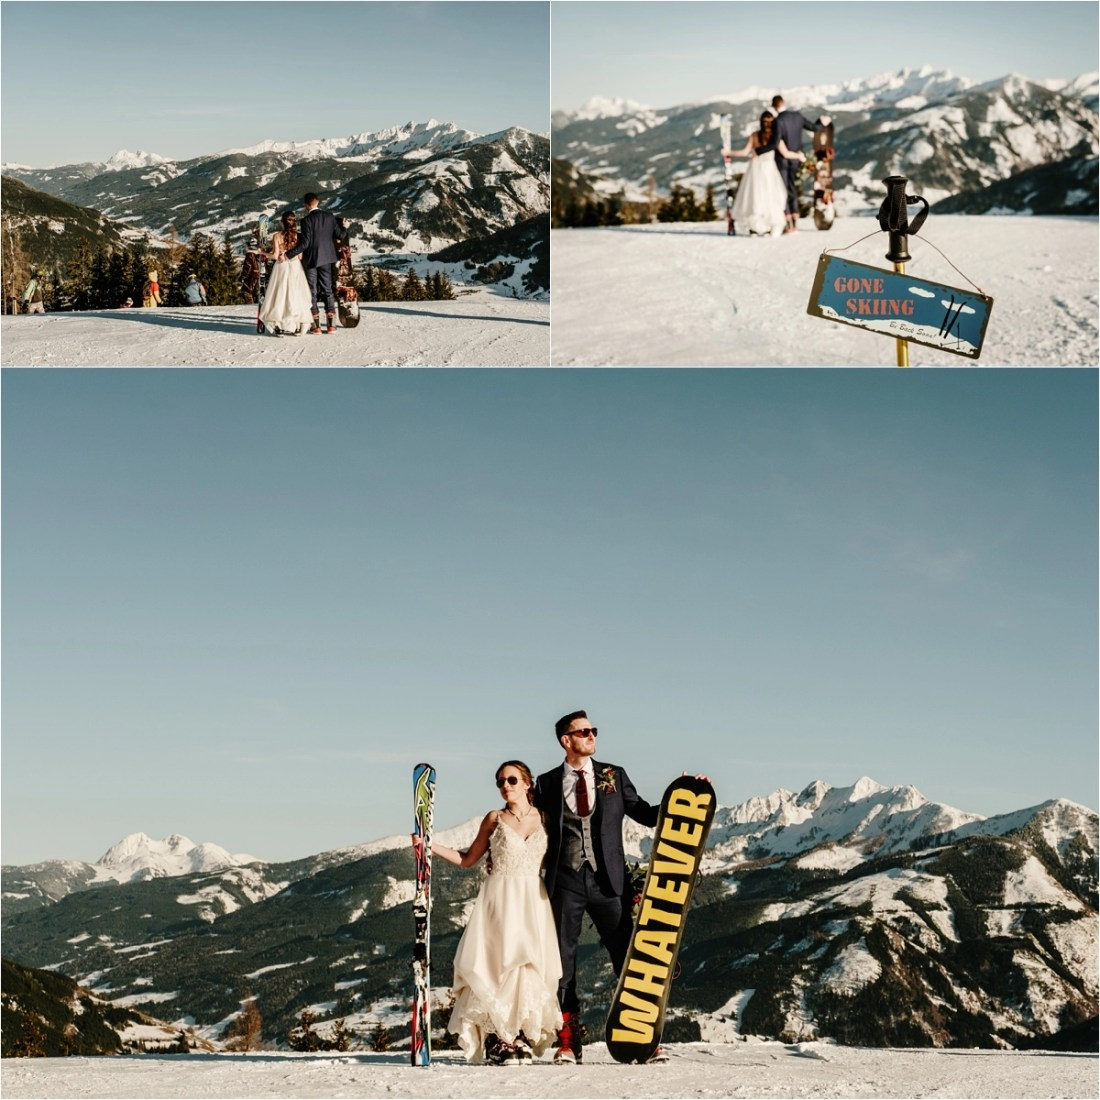 Gerry-Rae & NIck pose on the slopes with skis and a snowboard after thir spring wedding in Zell Am See Austria by Wild Connections Photography